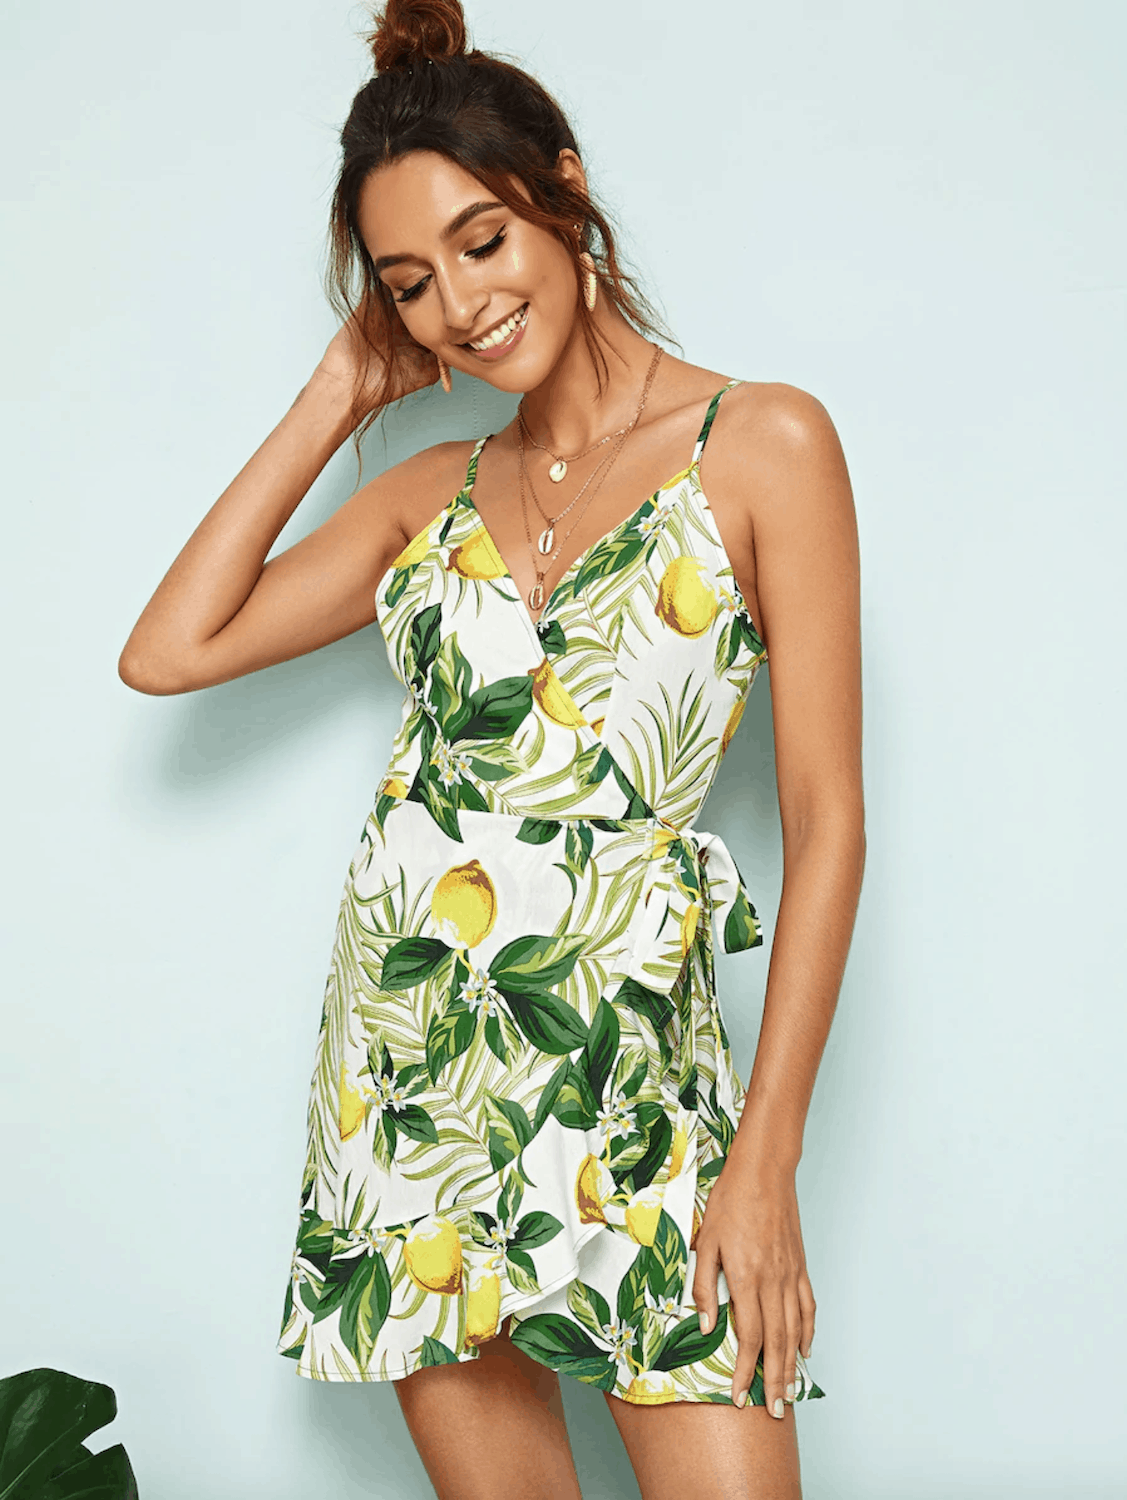 Positano Outfits Style Maxi Dresses Spring SHEIN Lemon Tie Side Ruffle Hem Wrap Cami Dress